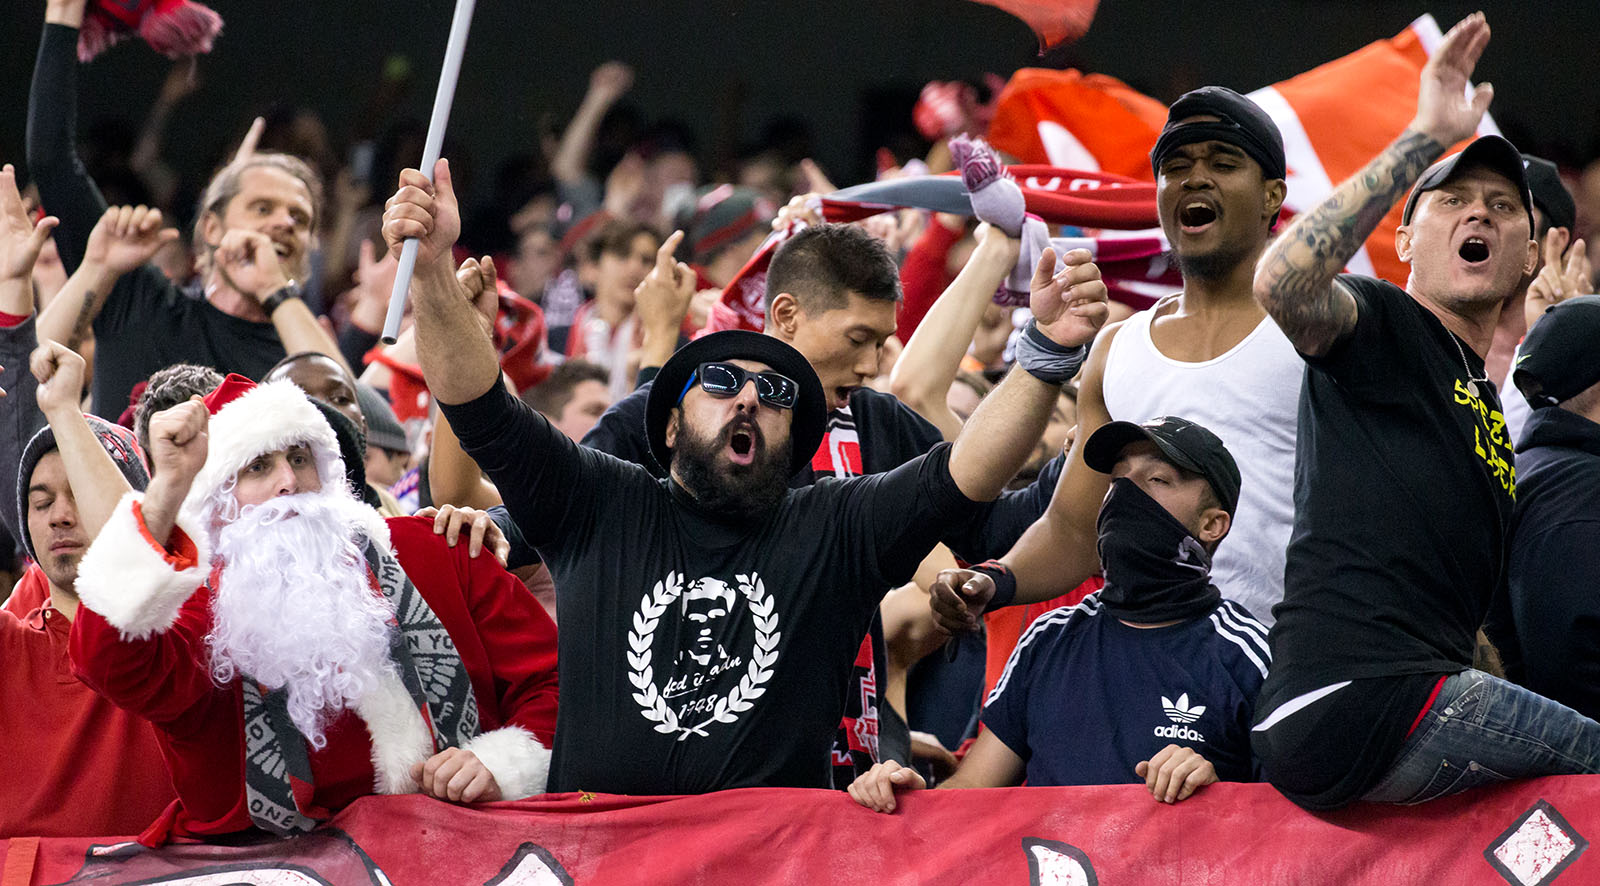 Toronto FC supporters celebrate a goal after being down 3-0 during the first leg of the eastern conference final on November 22, 2016.